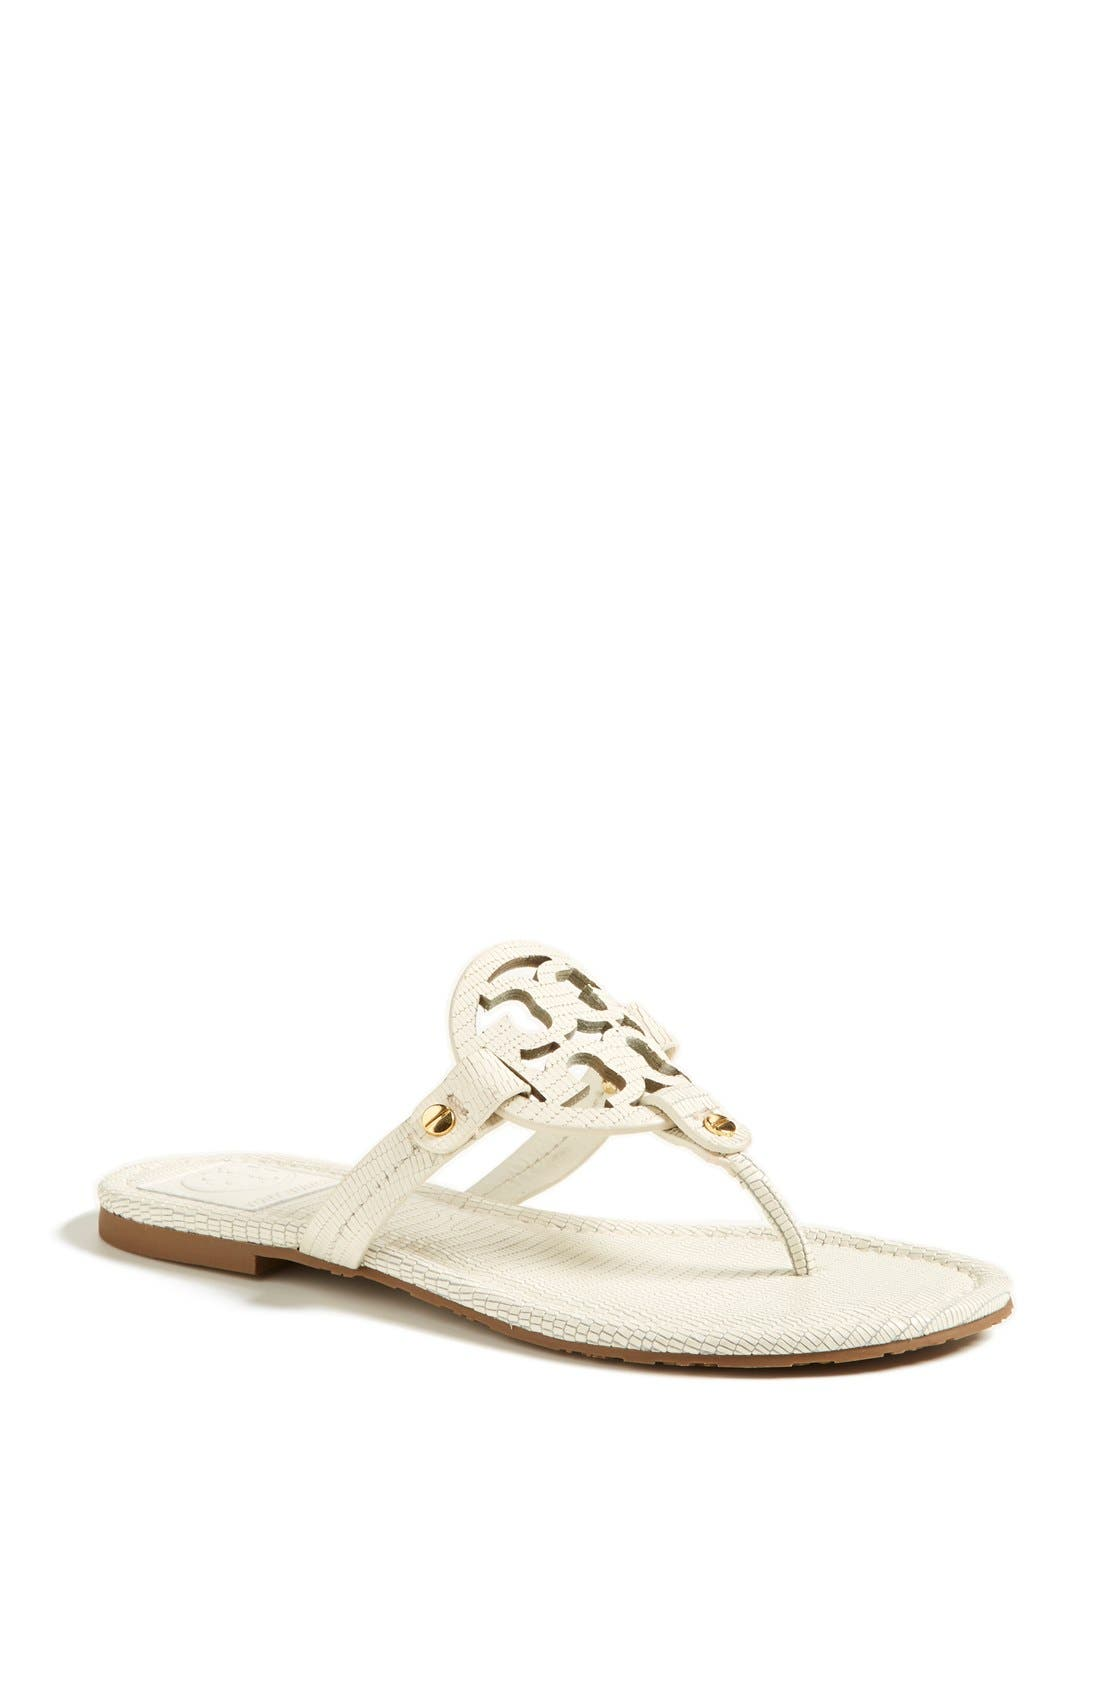 'Miller' Sandal, Main, color, 110